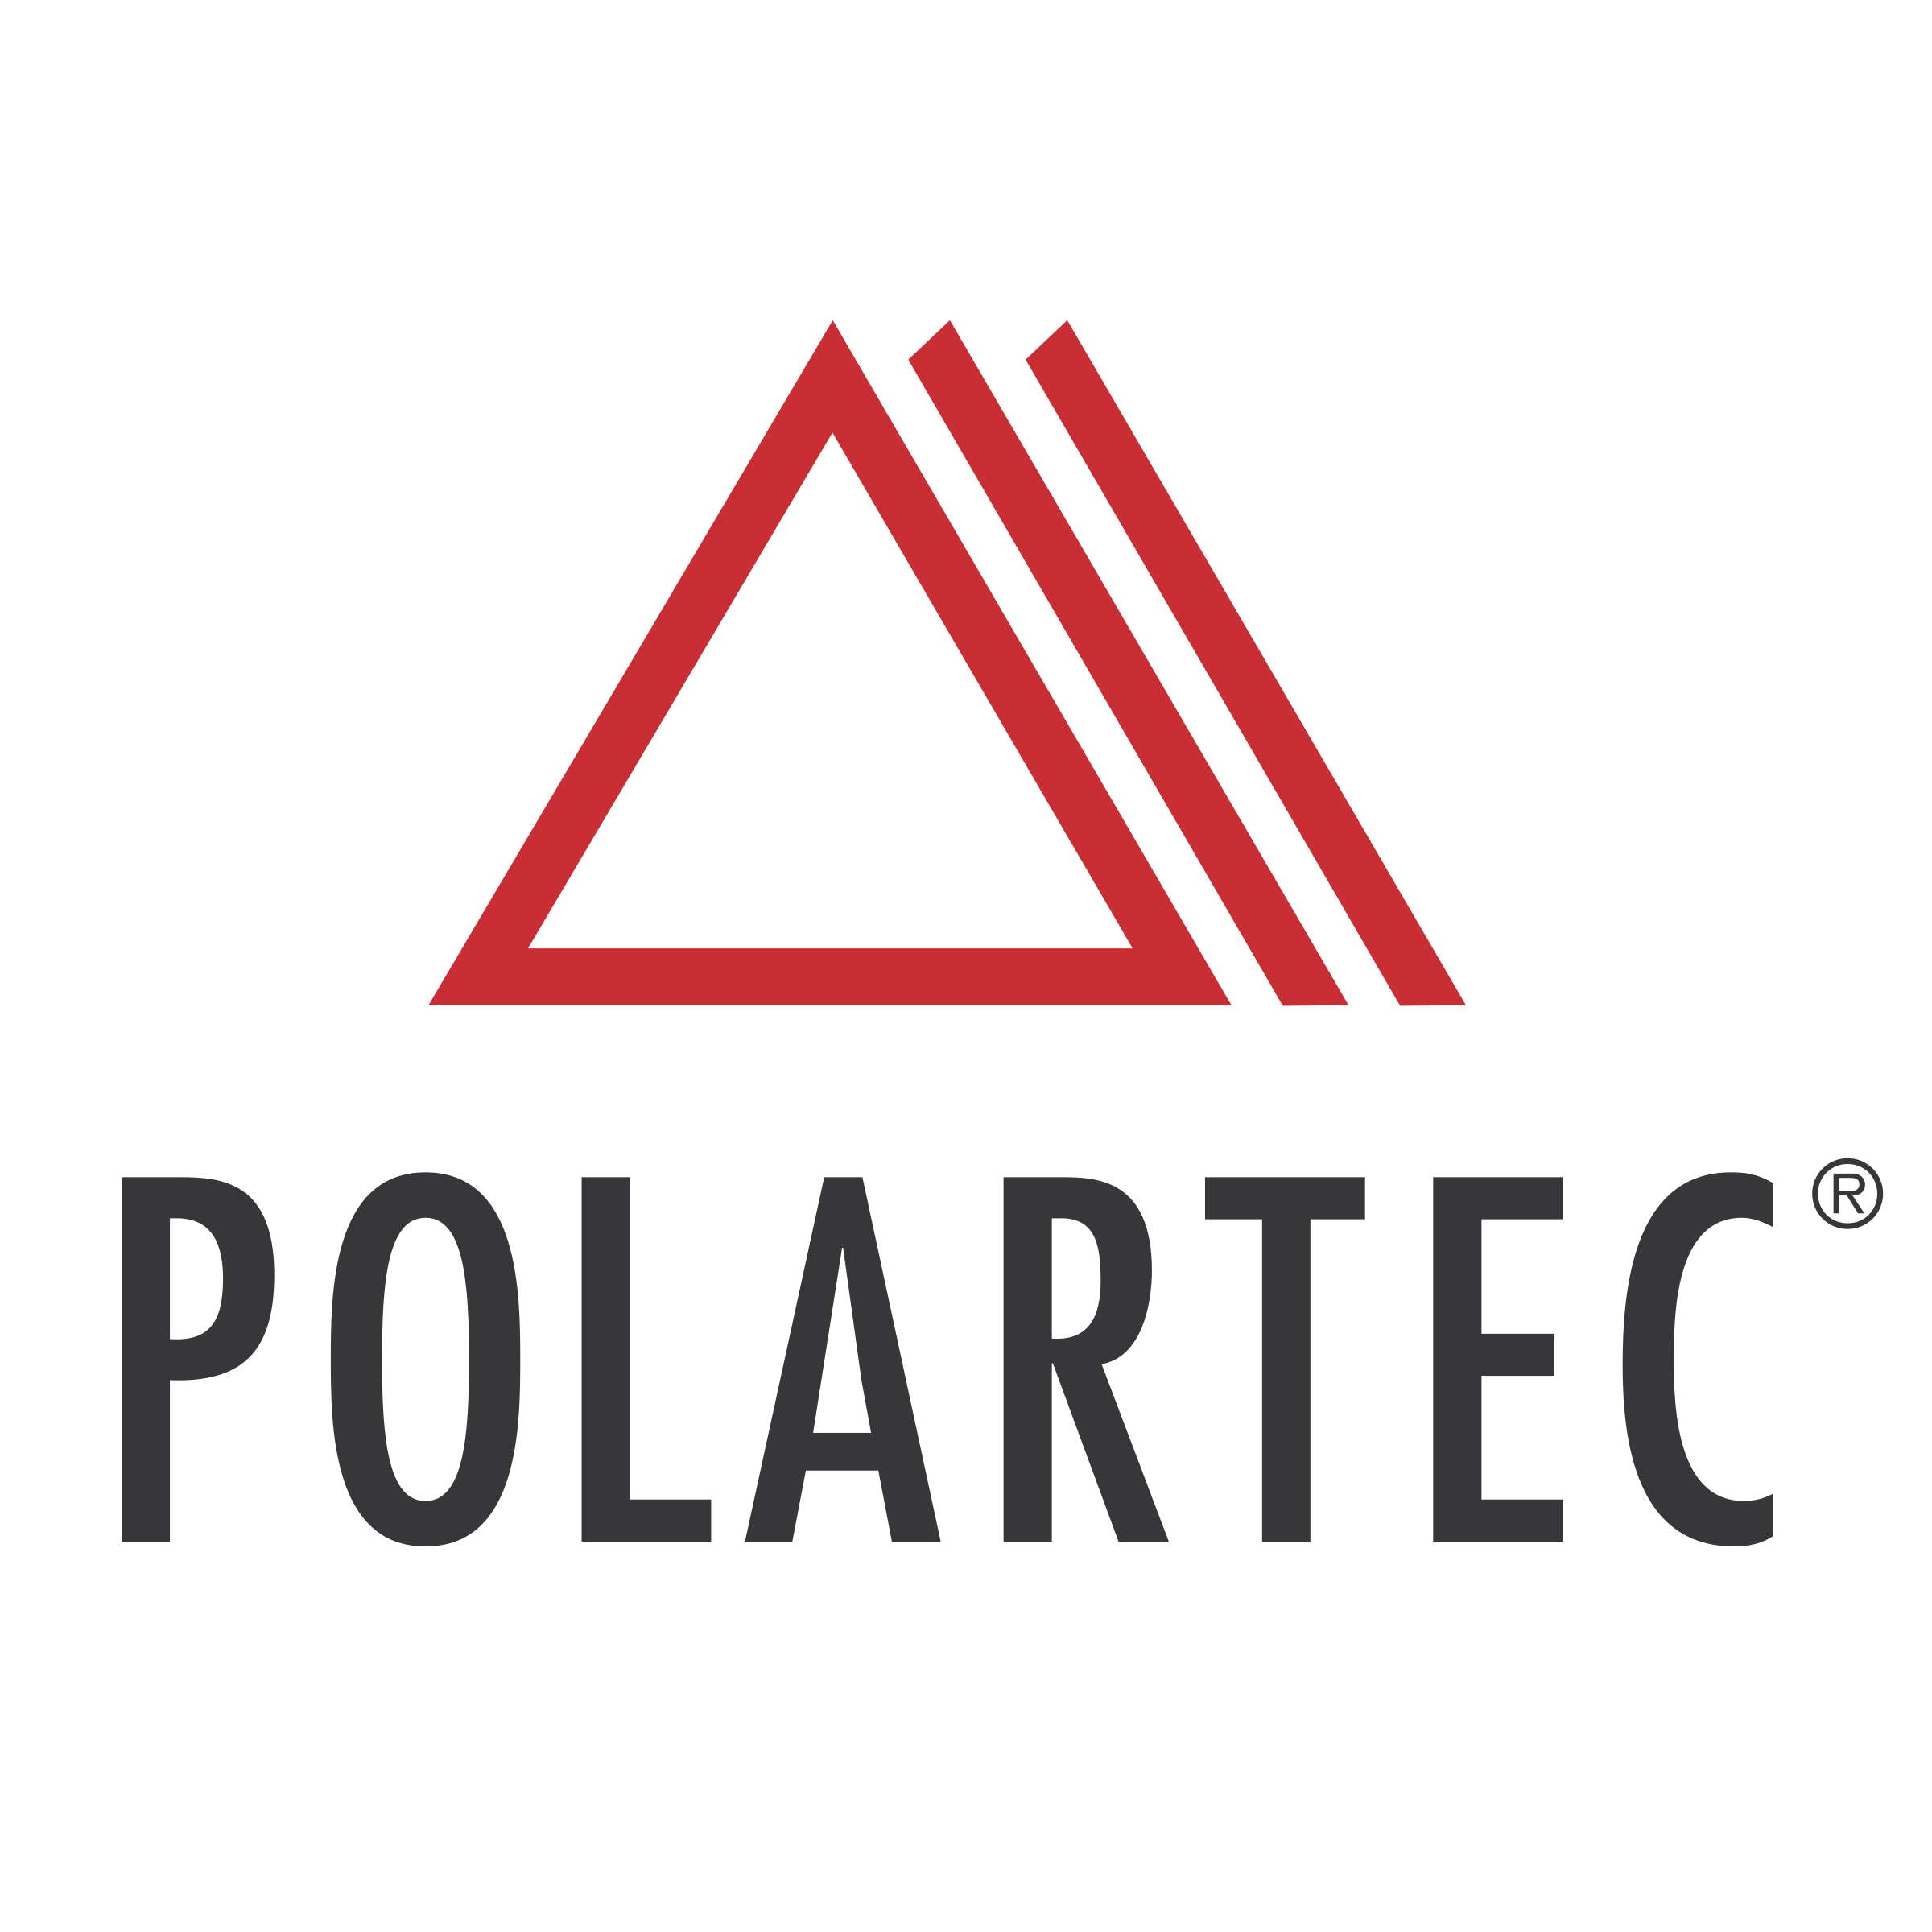 Polartec 1 Logo Png Transparent